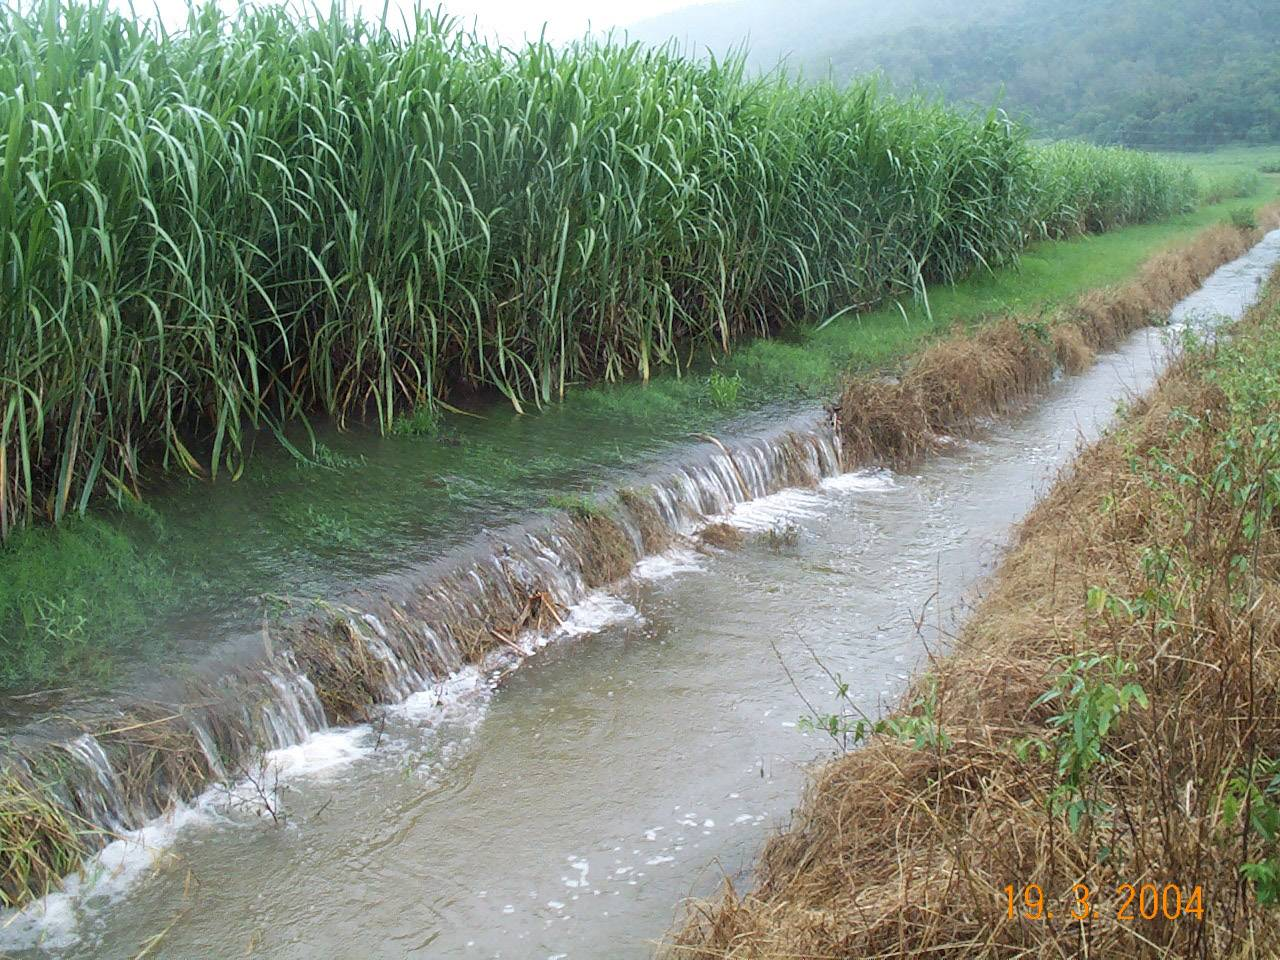 Water runoff from sugar cane fields.